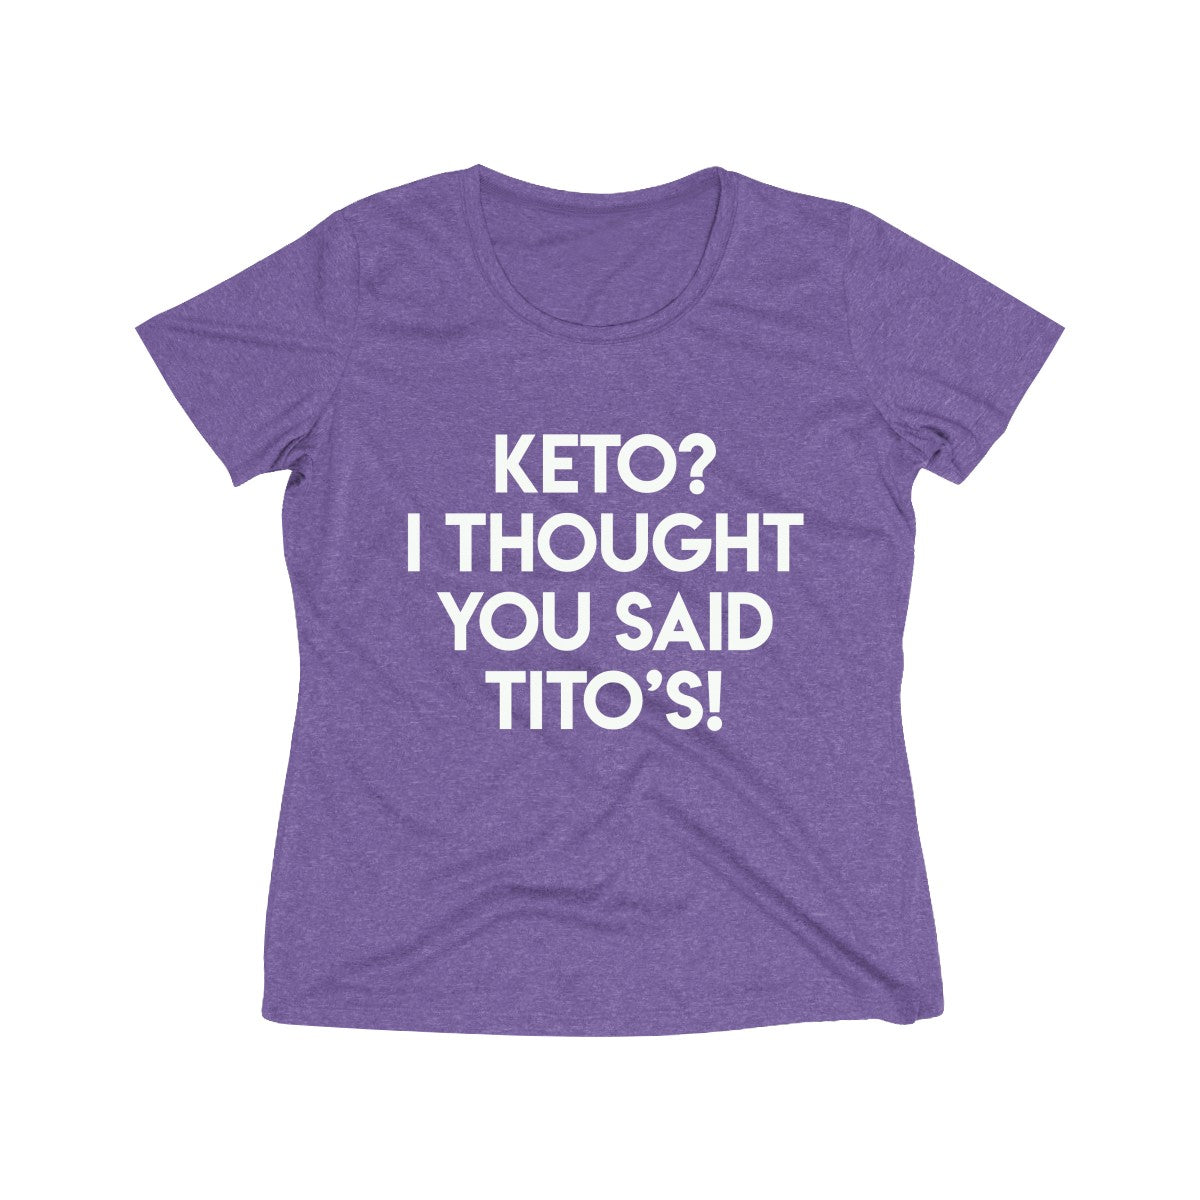 KETO & Tito's - Women's Heather Wicking Tee - Sport Tek